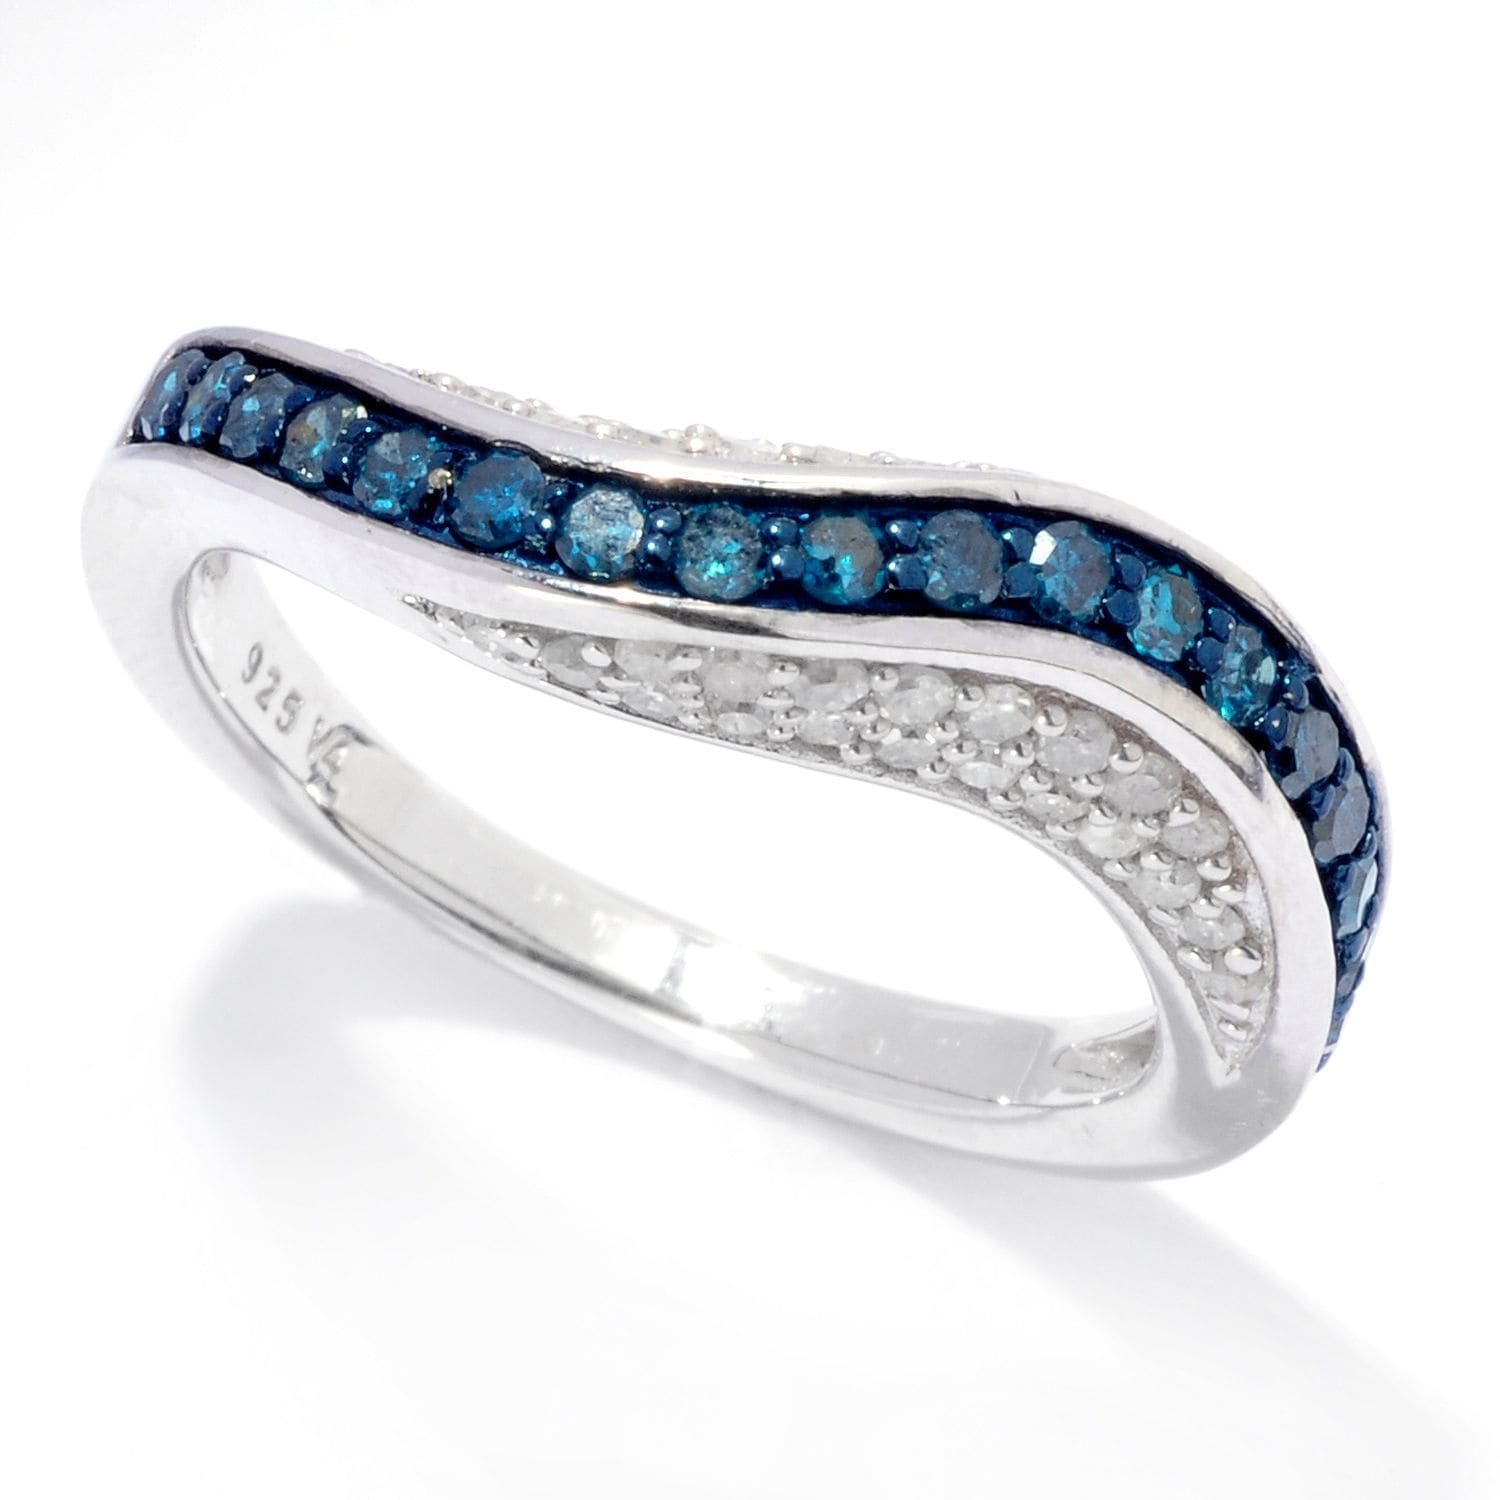 rings ring accent op blue silver sharpen wedding diamond white promise wid sterling prd jsp hei heart double and product